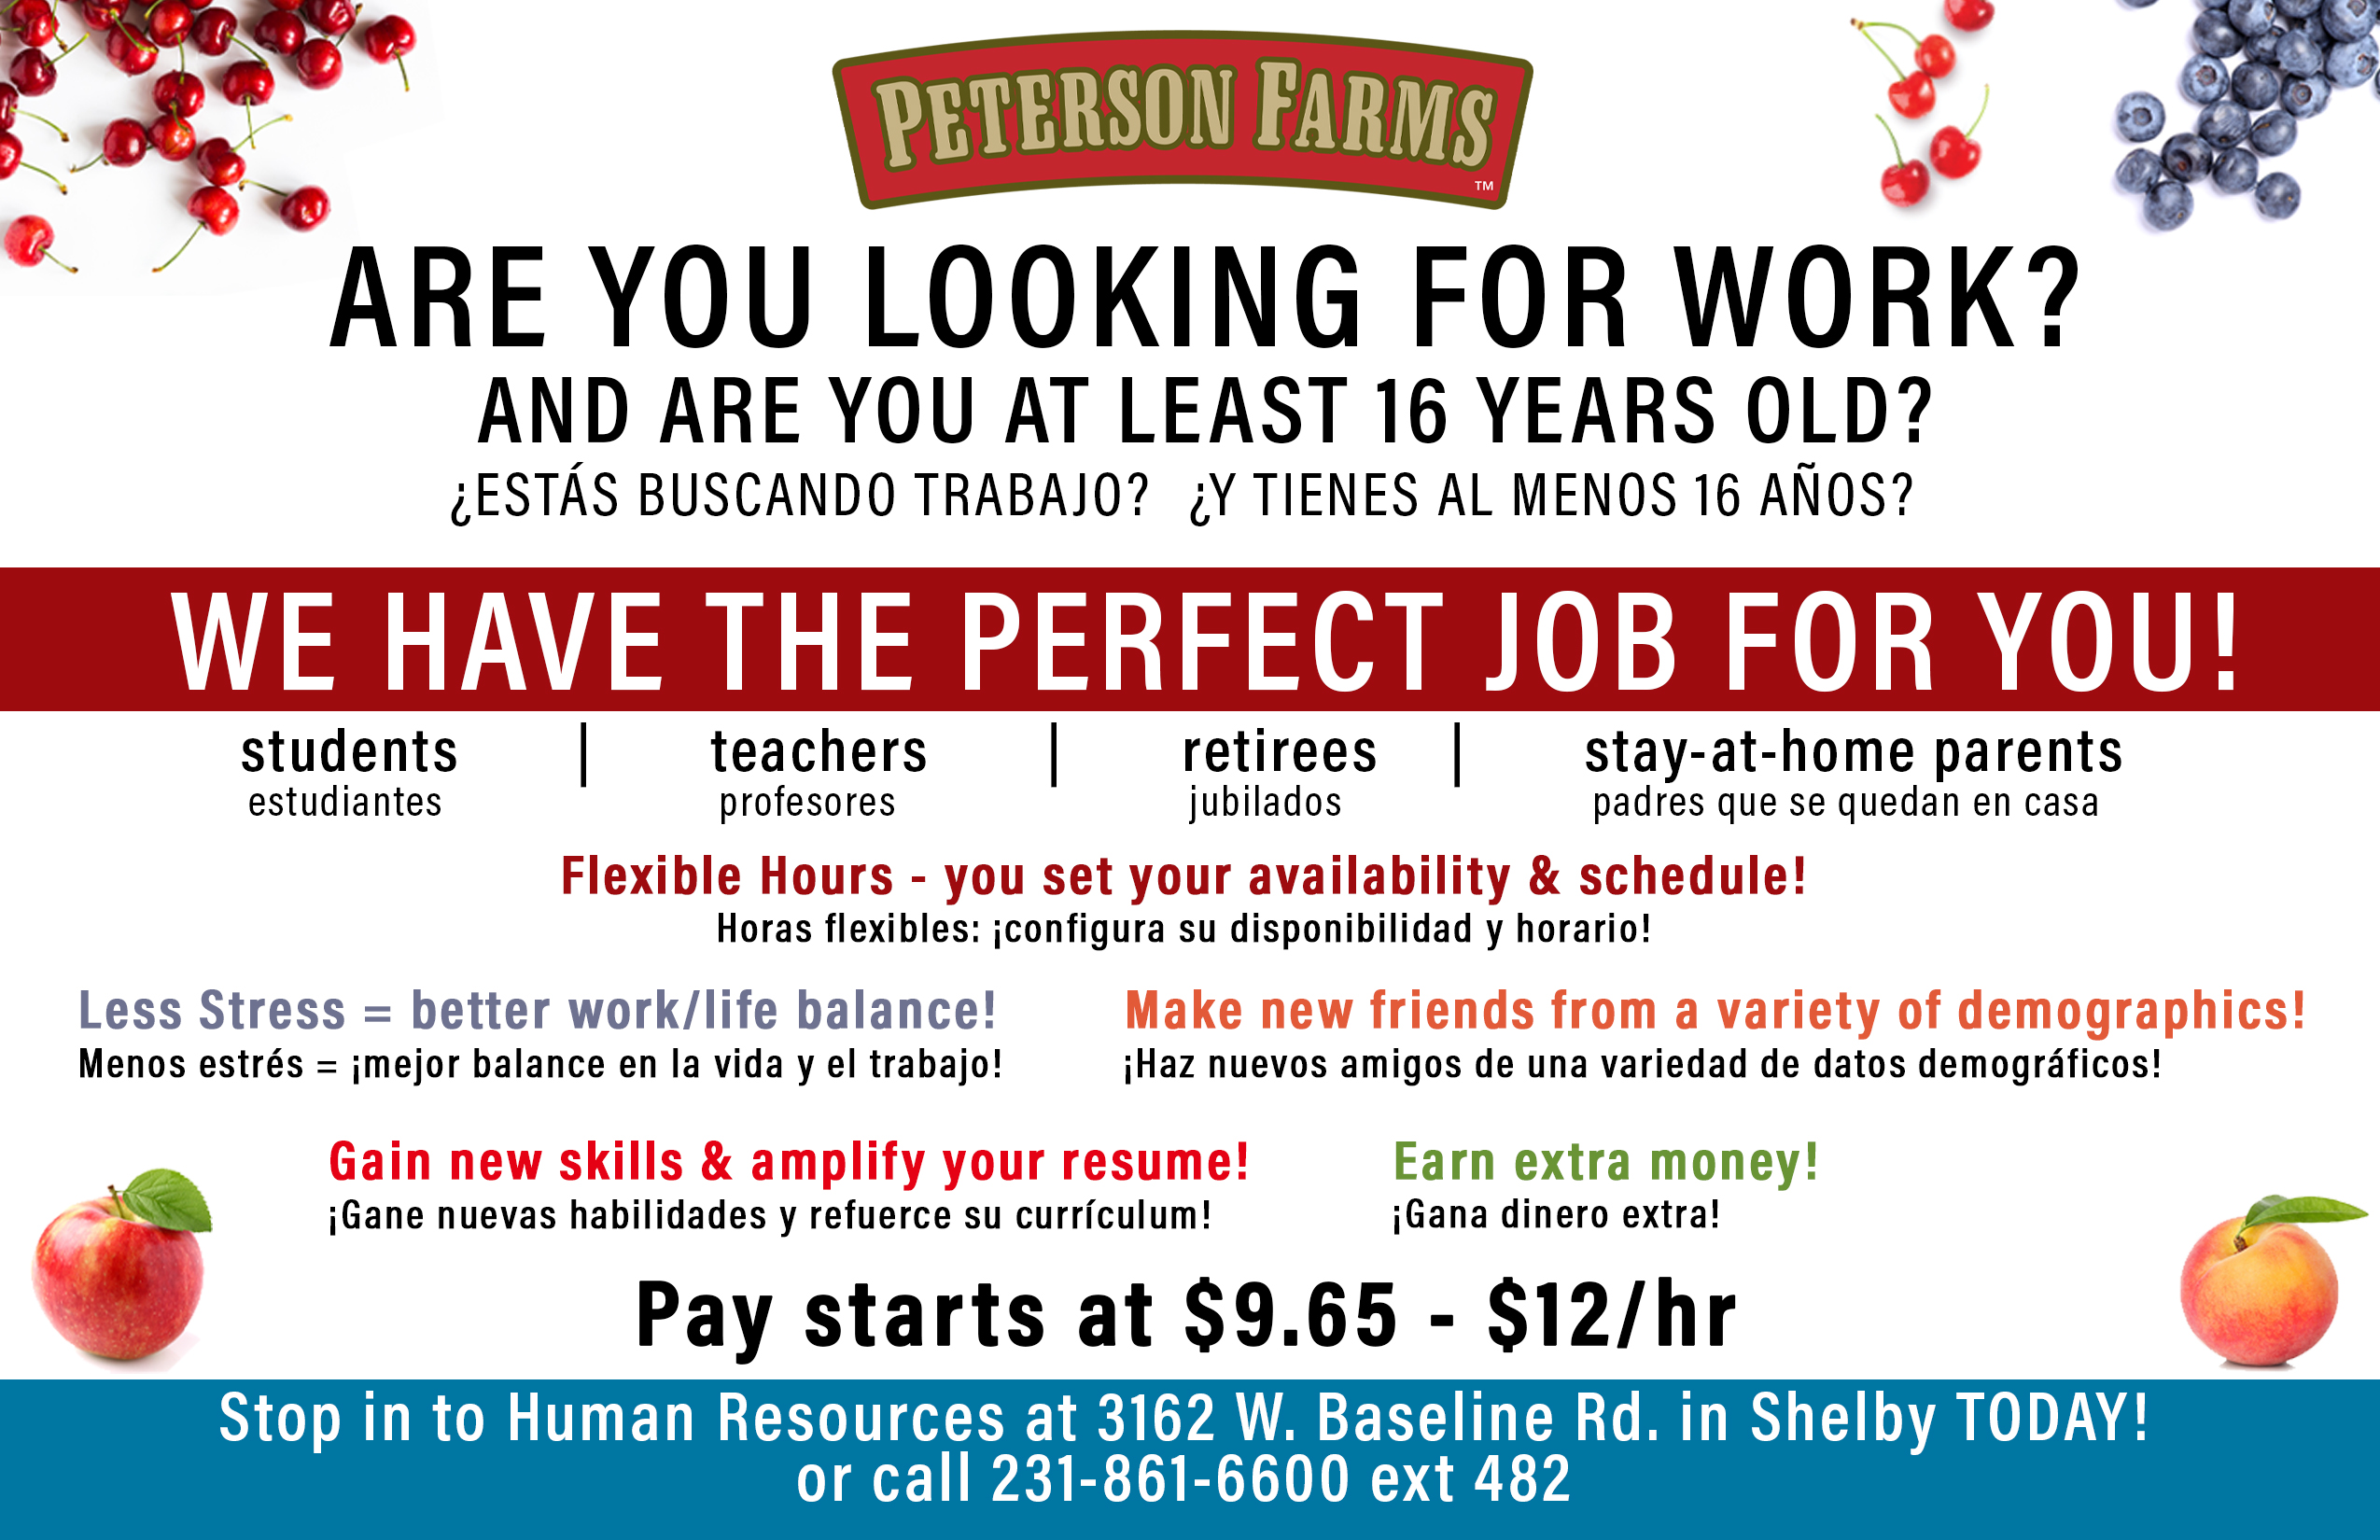 Peterson Farms Recruitment flyer for Summer Work